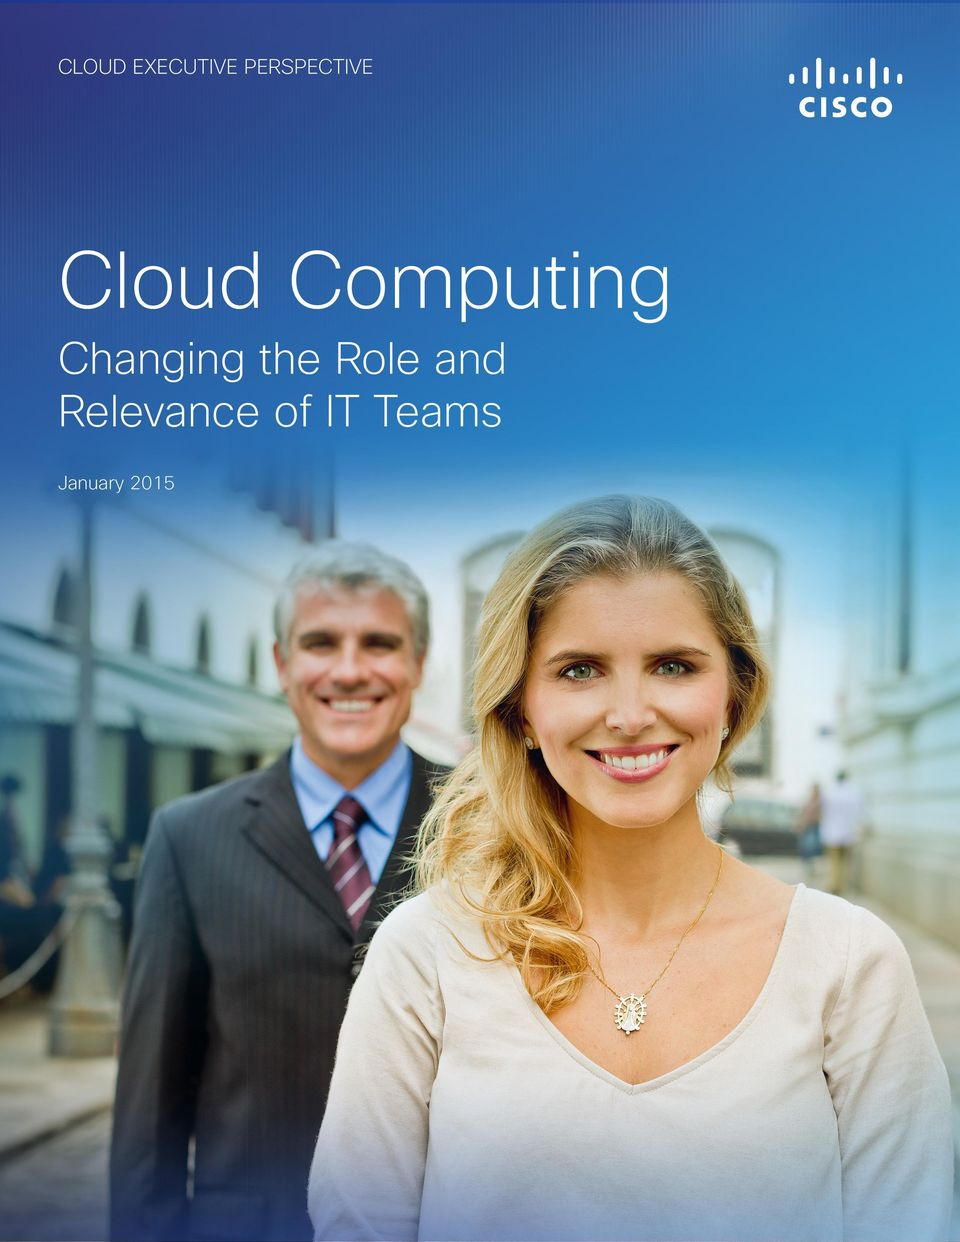 Cloud Computing Changing the Role